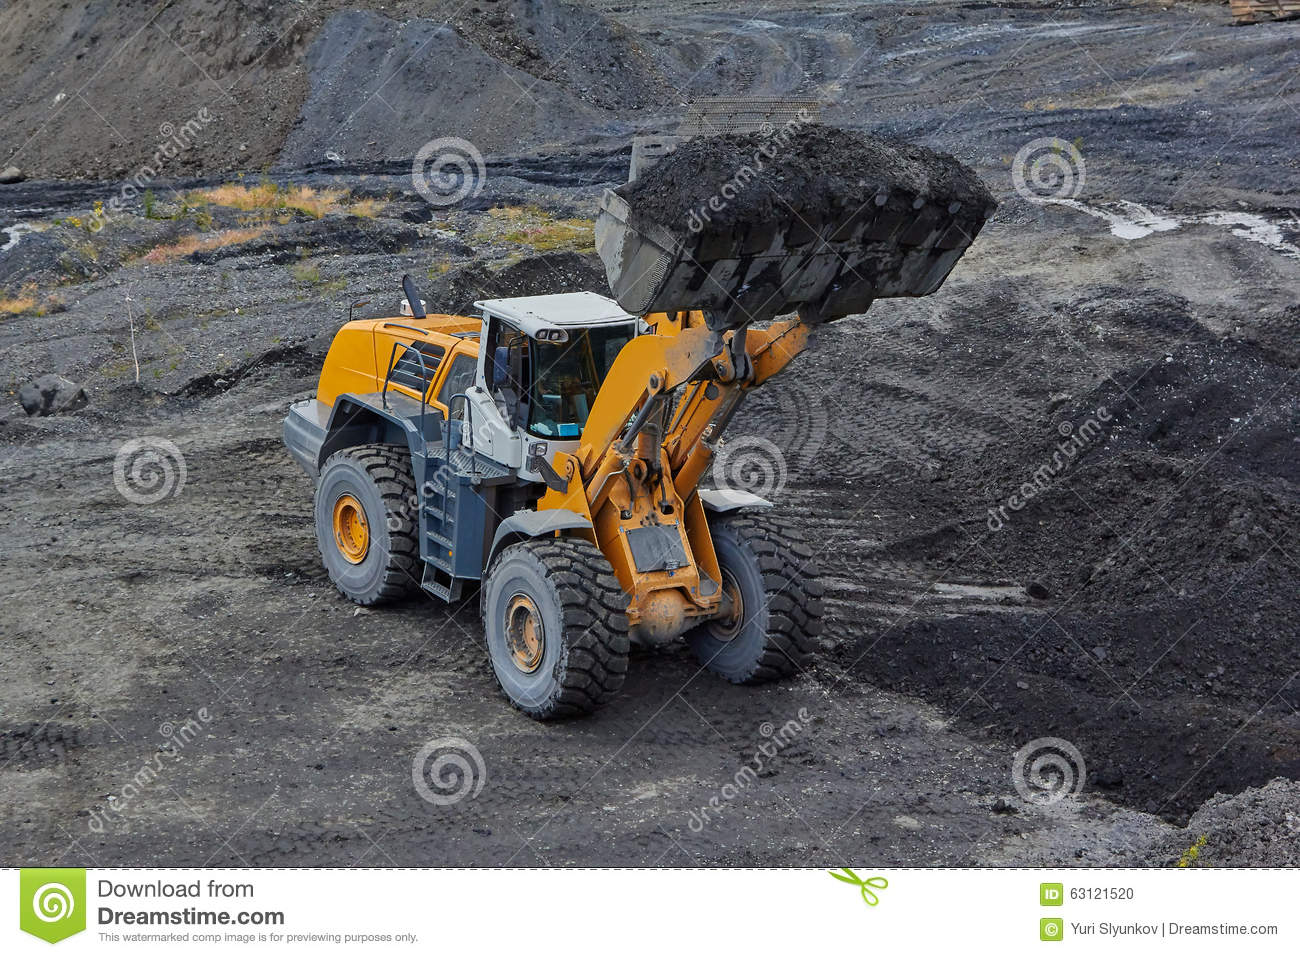 Gold mining in Susuman. An auto-loader with a full ladle